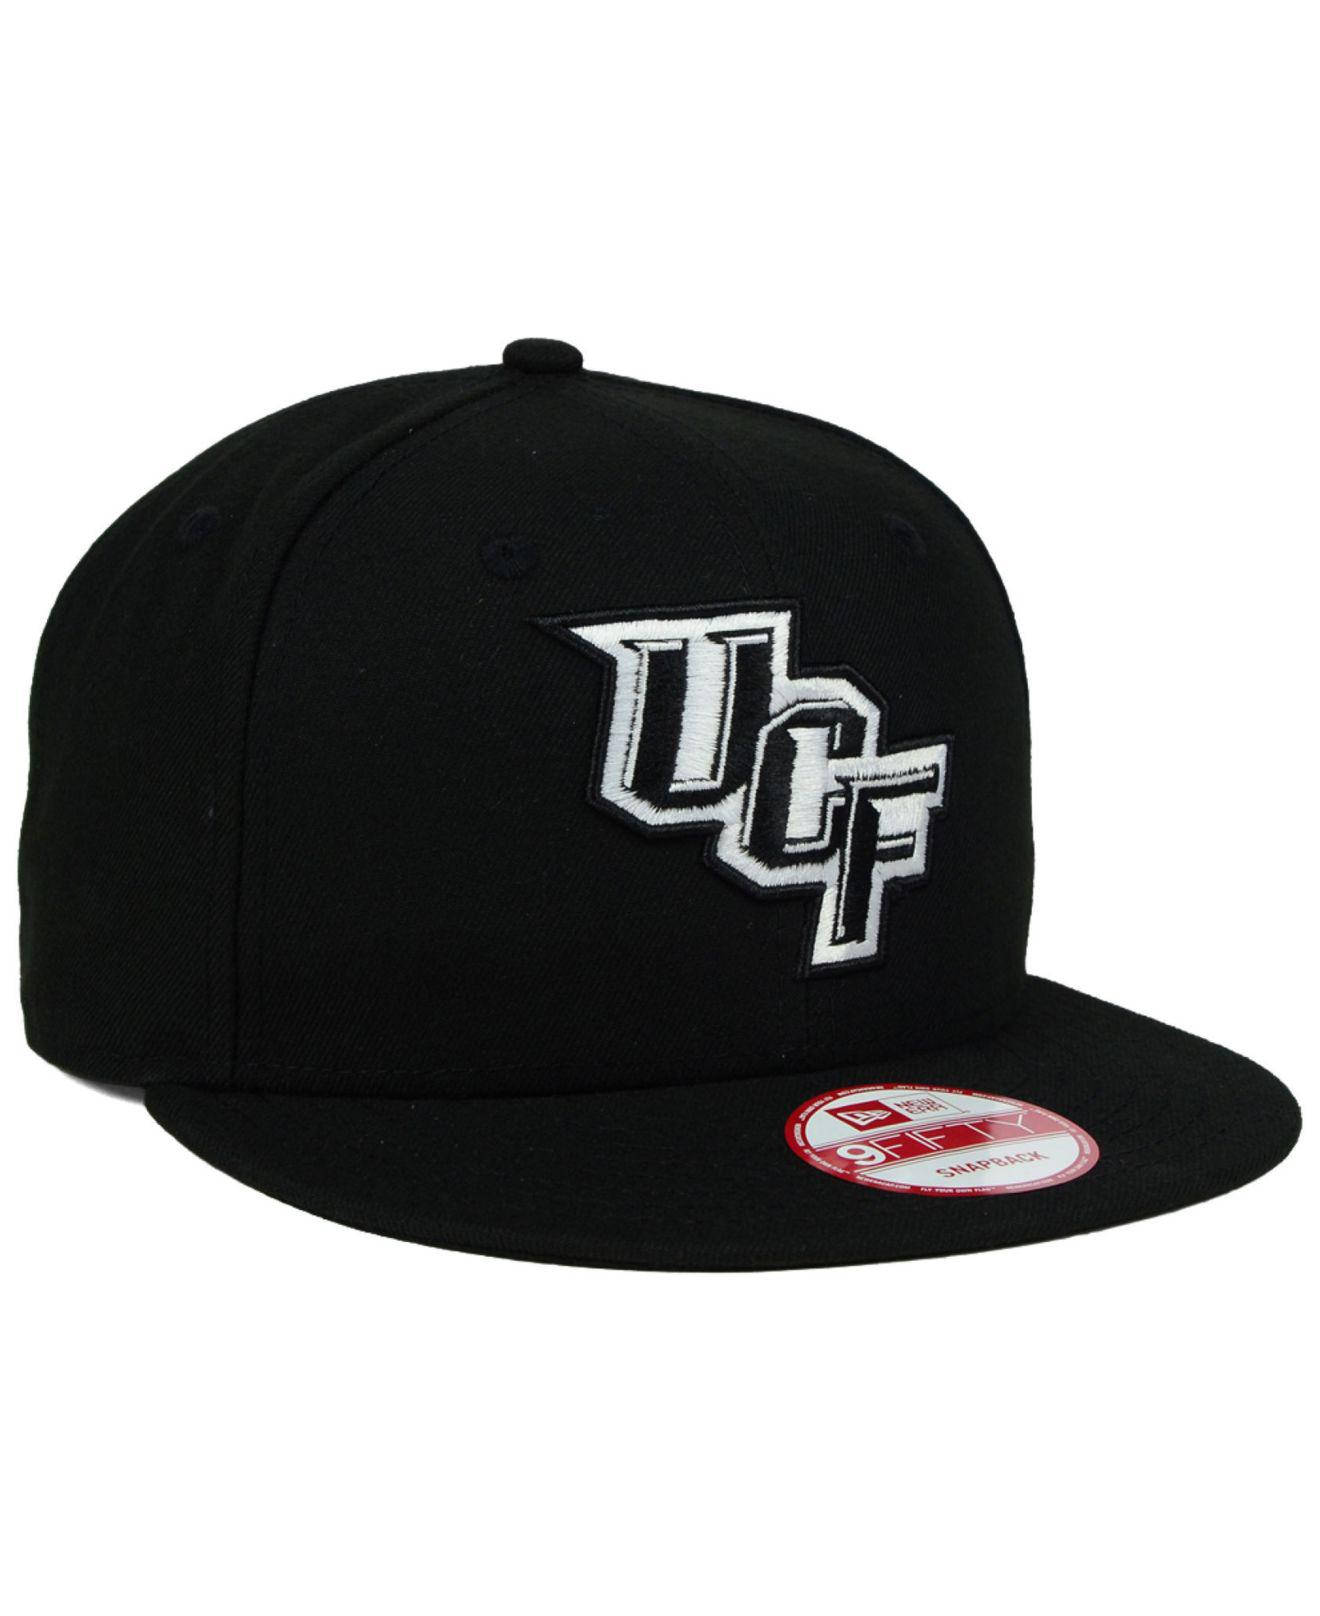 ebf3189cabd KTZ - Ucf Knights Black White 9fifty Snapback Cap for Men - Lyst. View  fullscreen